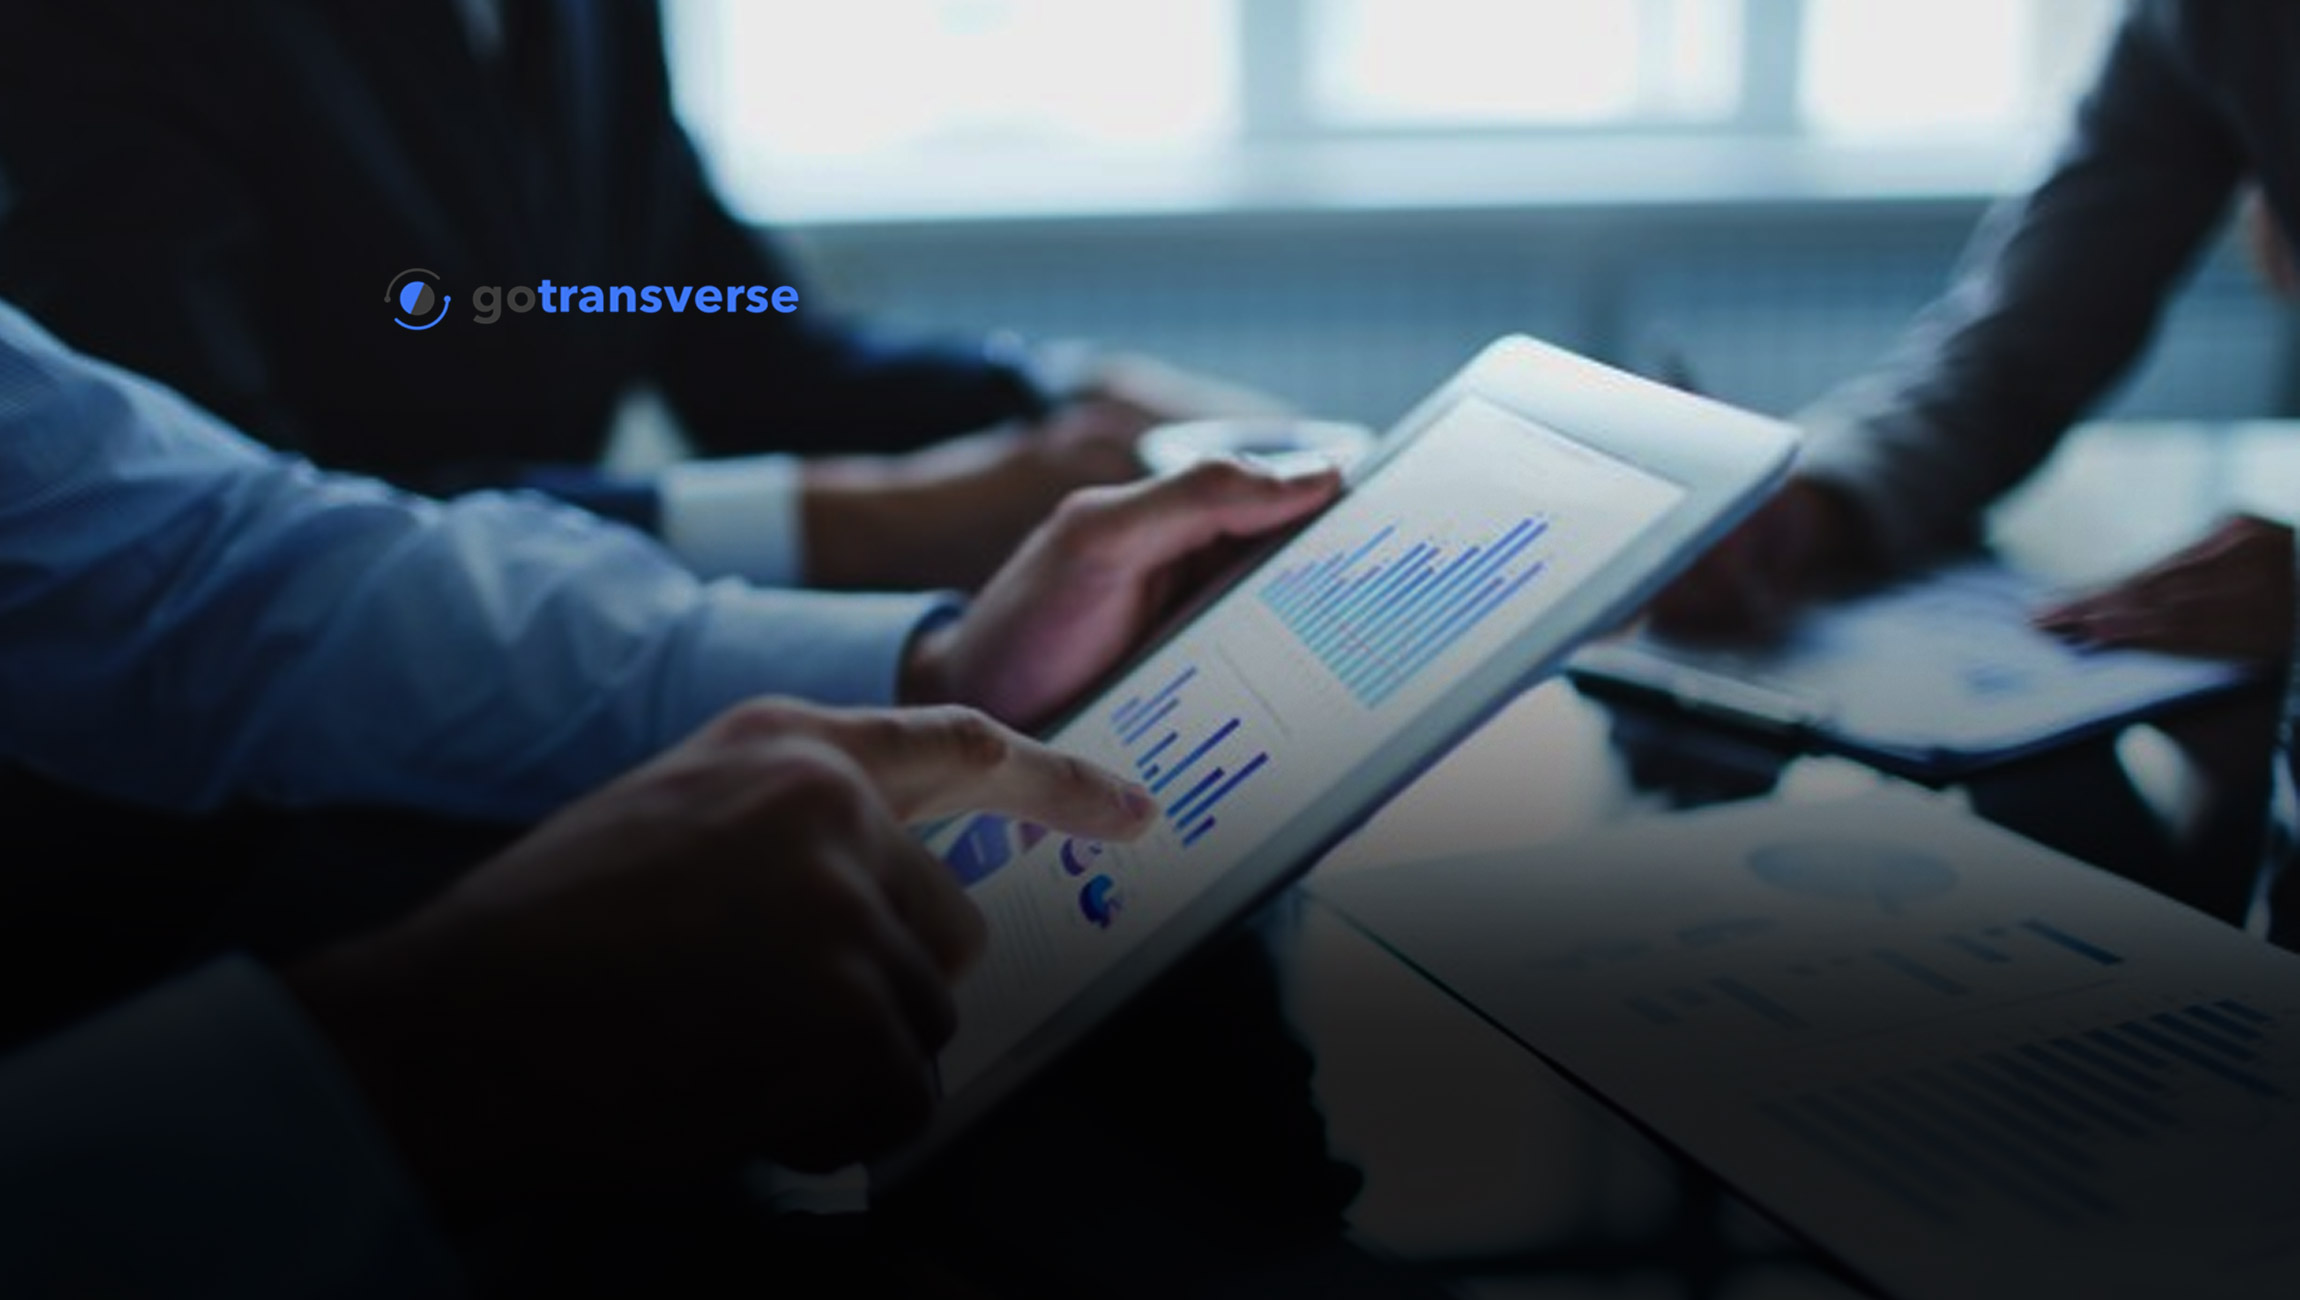 Gotransverse Closes 2020 with Globalization, Business Intelligence, Ecosystem, and Personalization Features for Innovative Monetization Models